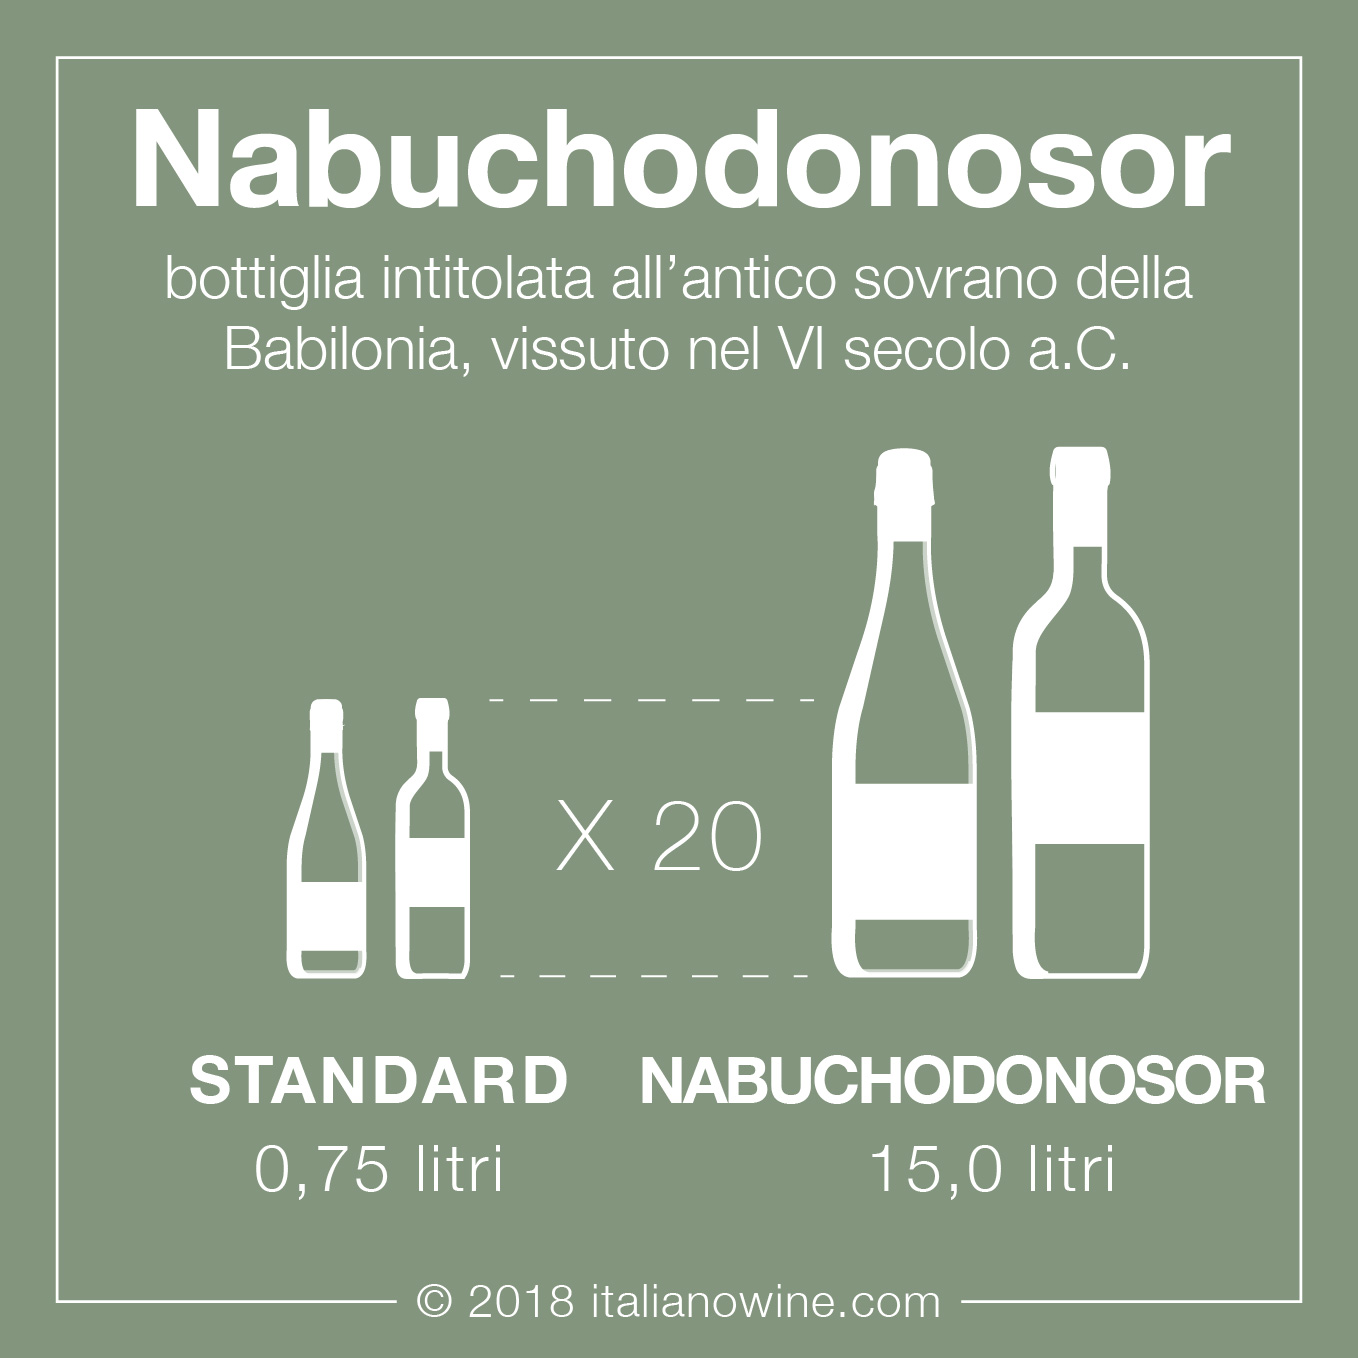 Nabuchodonosor IT